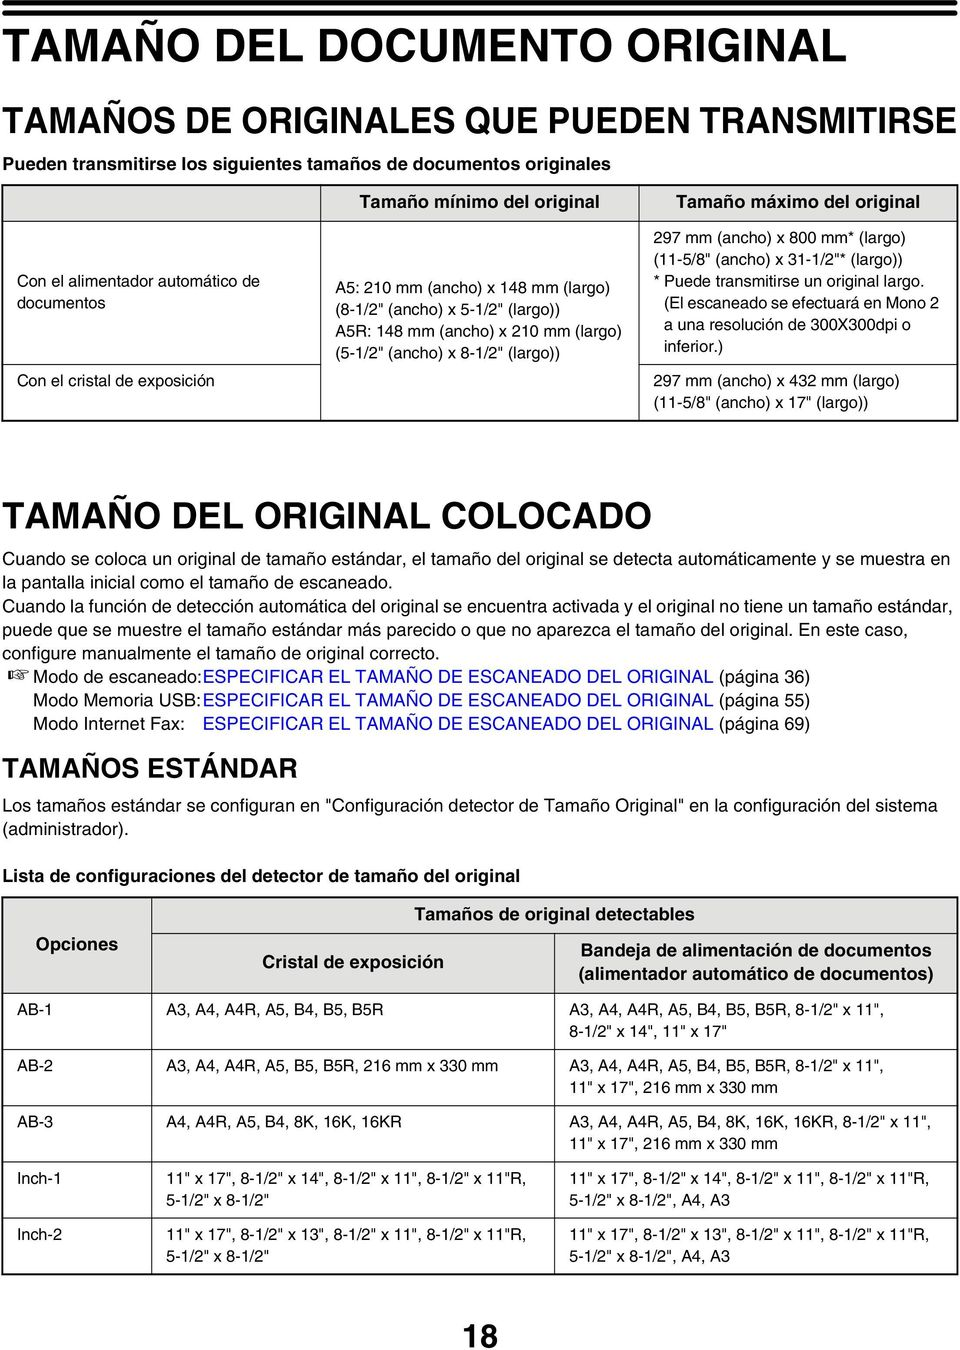 "original 297 mm (ancho) x 800 mm* (largo) (-5/8"" (ancho) x 3-/2""* (largo)) * Puede transmitirse un original largo. (El escaneado se efectuará en Mono 2 a una resolución de 300X300dpi o inferior."